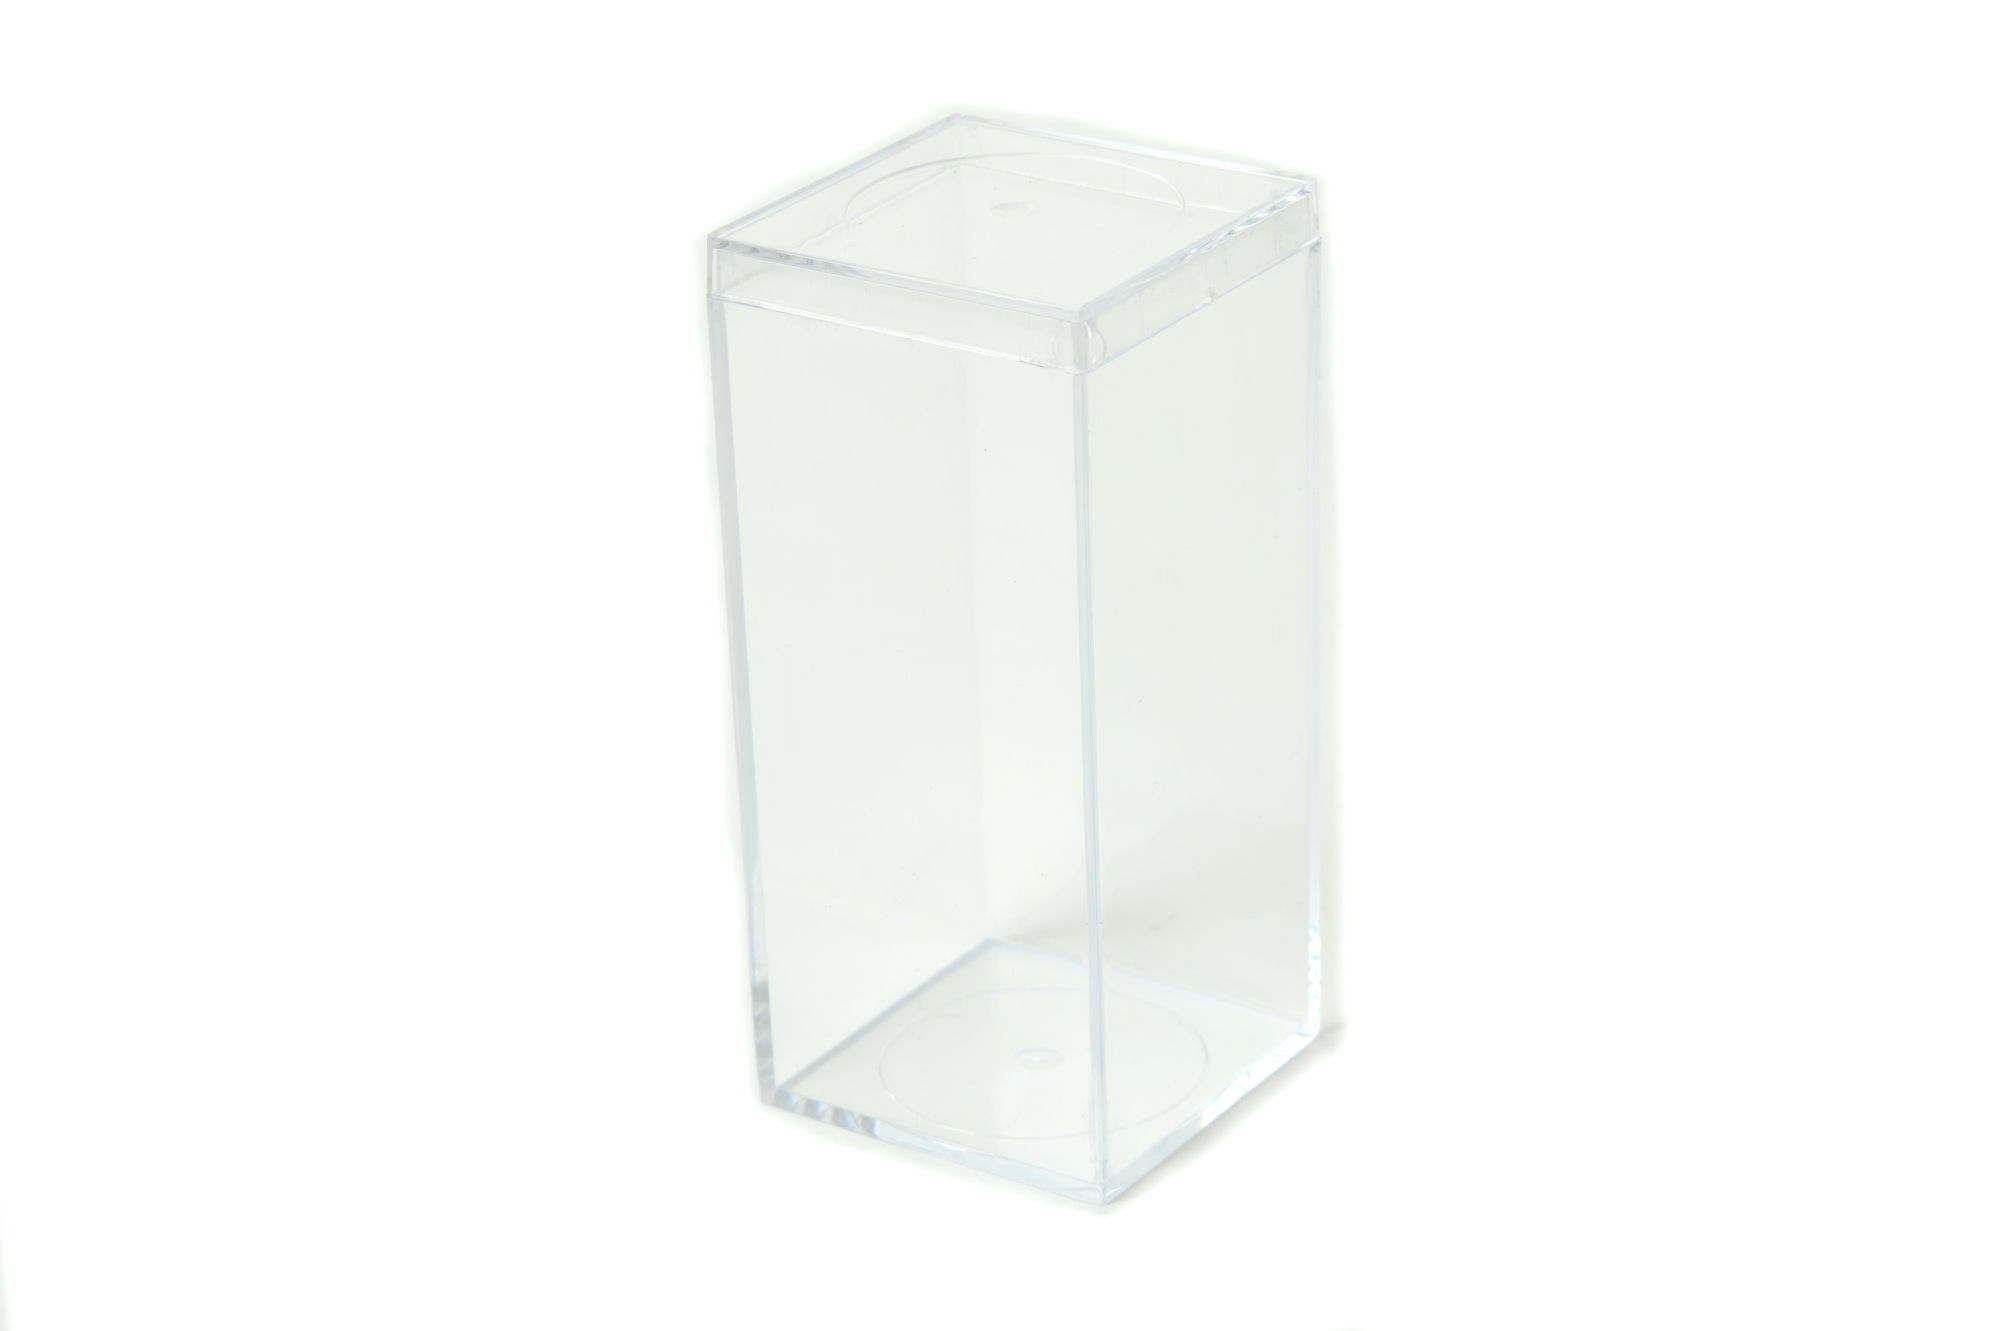 Clear plastic gift boxrectangle boxes with lid etsy